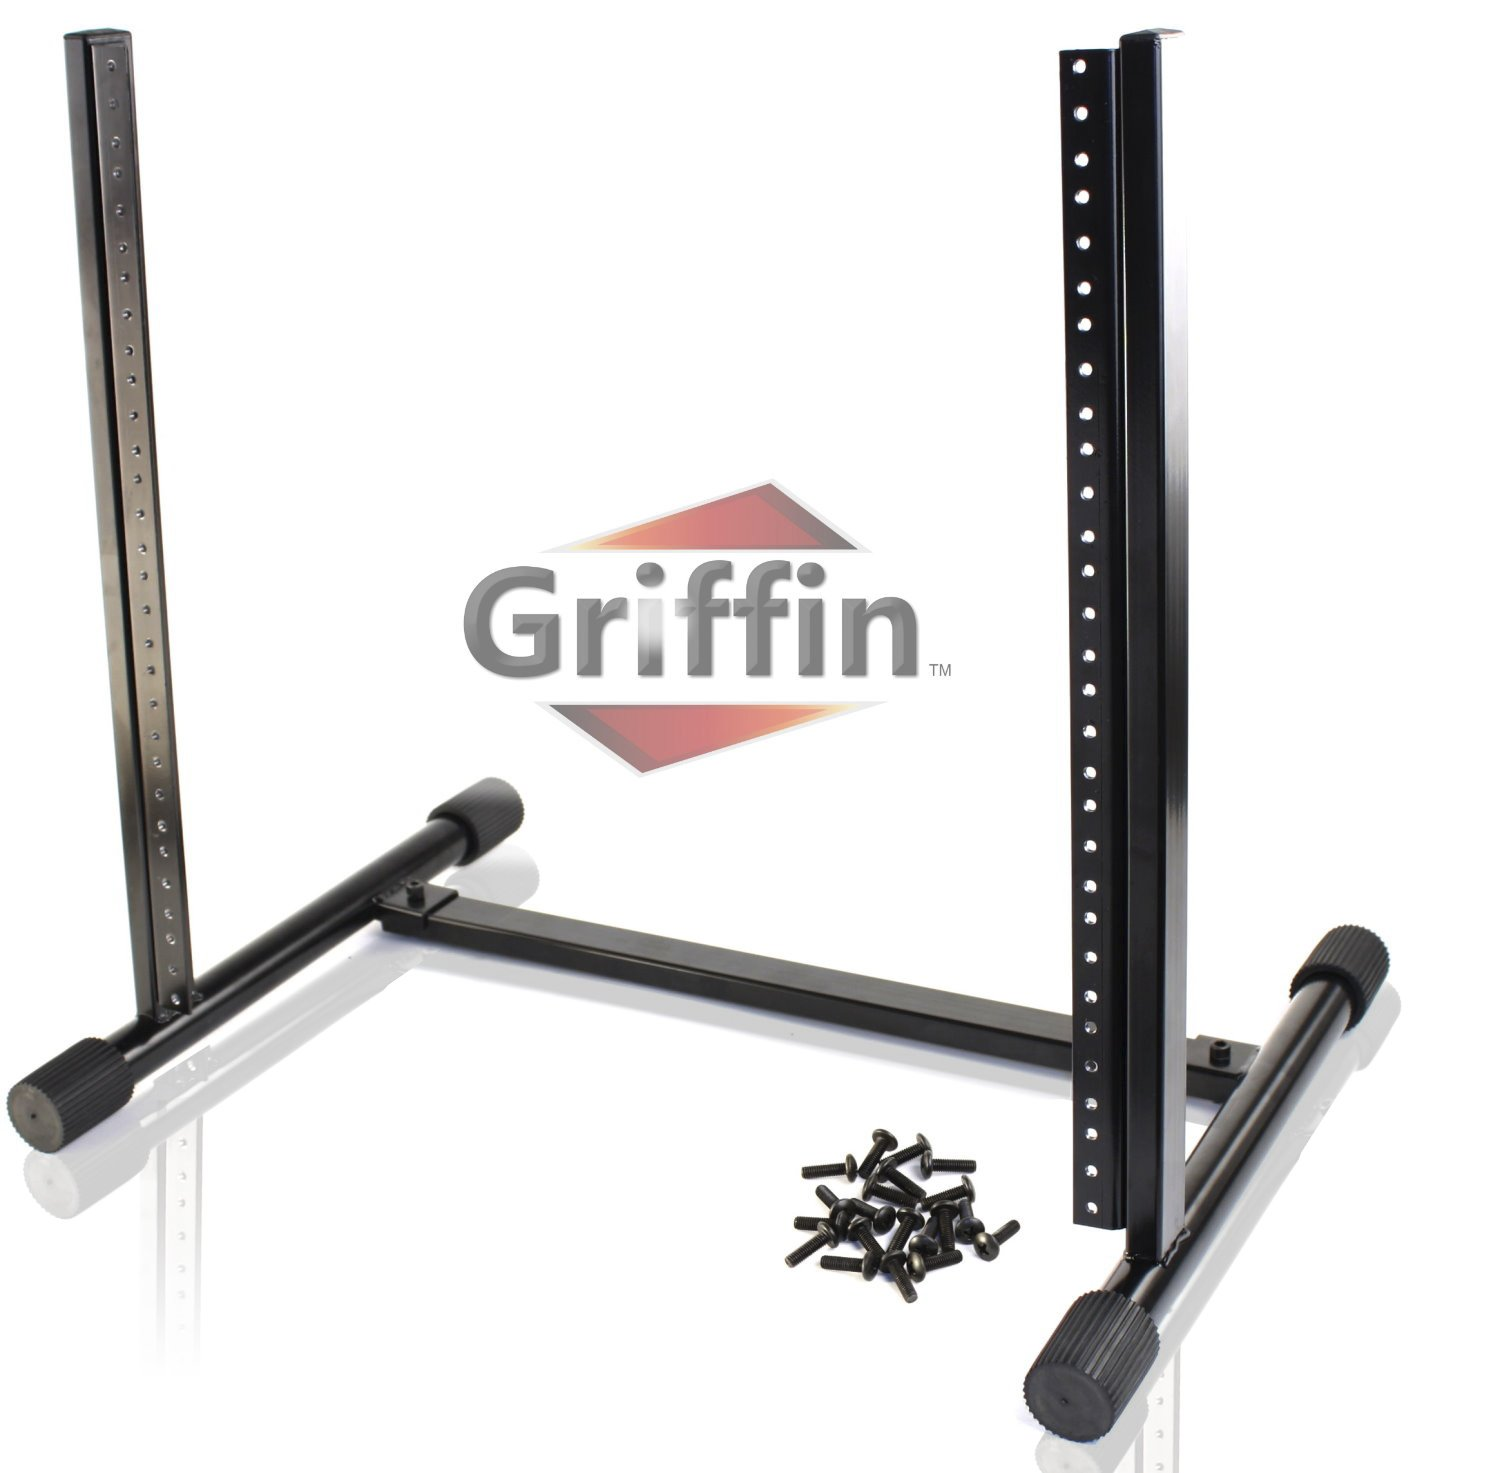 Rack Mount Stand with 10 Spaces by Griffin | Music Studio Recording Equipment Mixer Standing Case | RackMount Audio Network Server Gear for DJs, Stage Performers and Bands|Includes 20 Standard Screws by Griffin